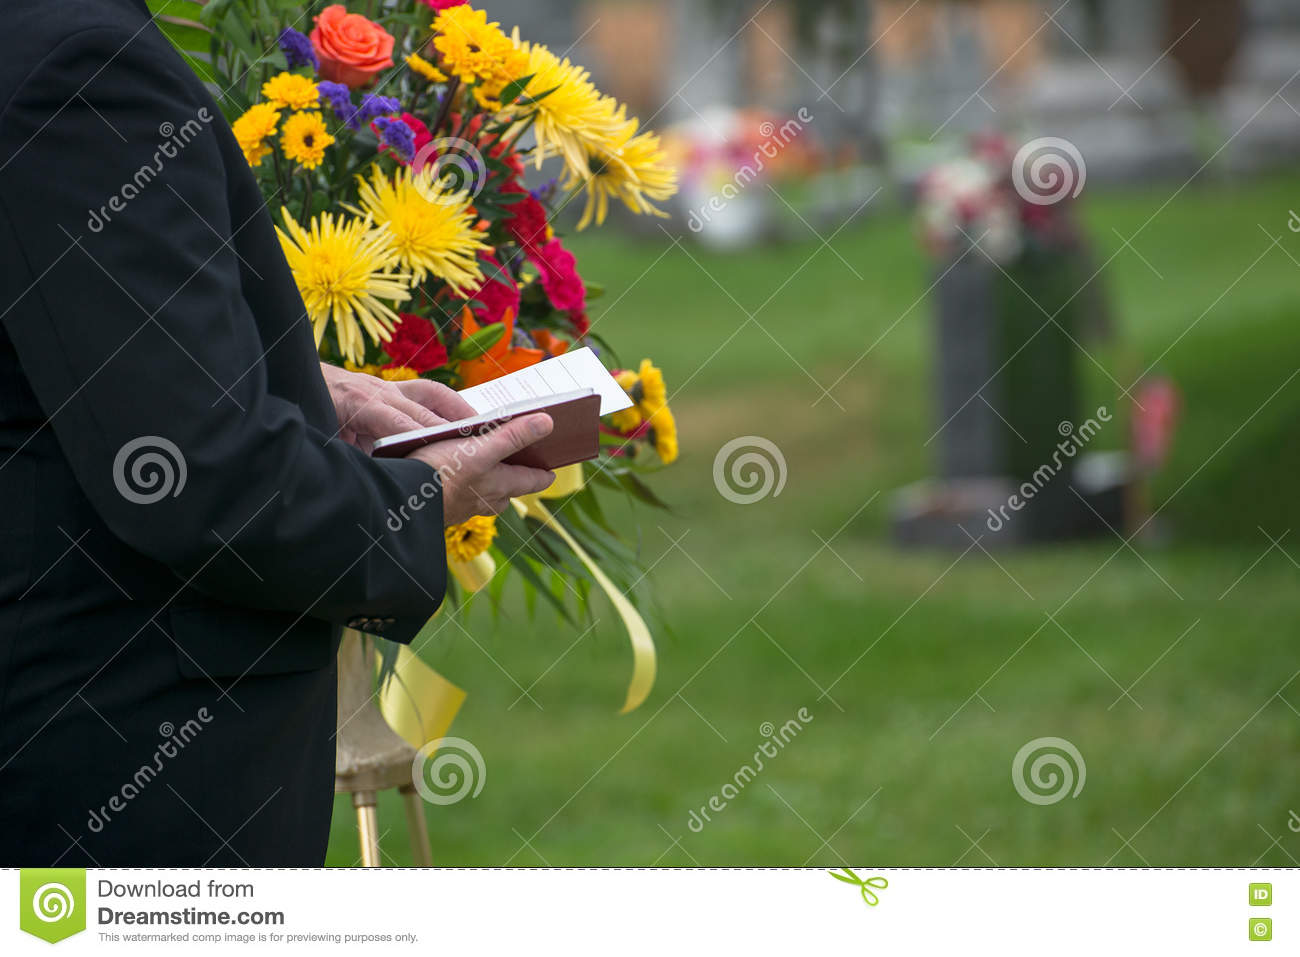 Funeral, Burial Service, Death, Grief